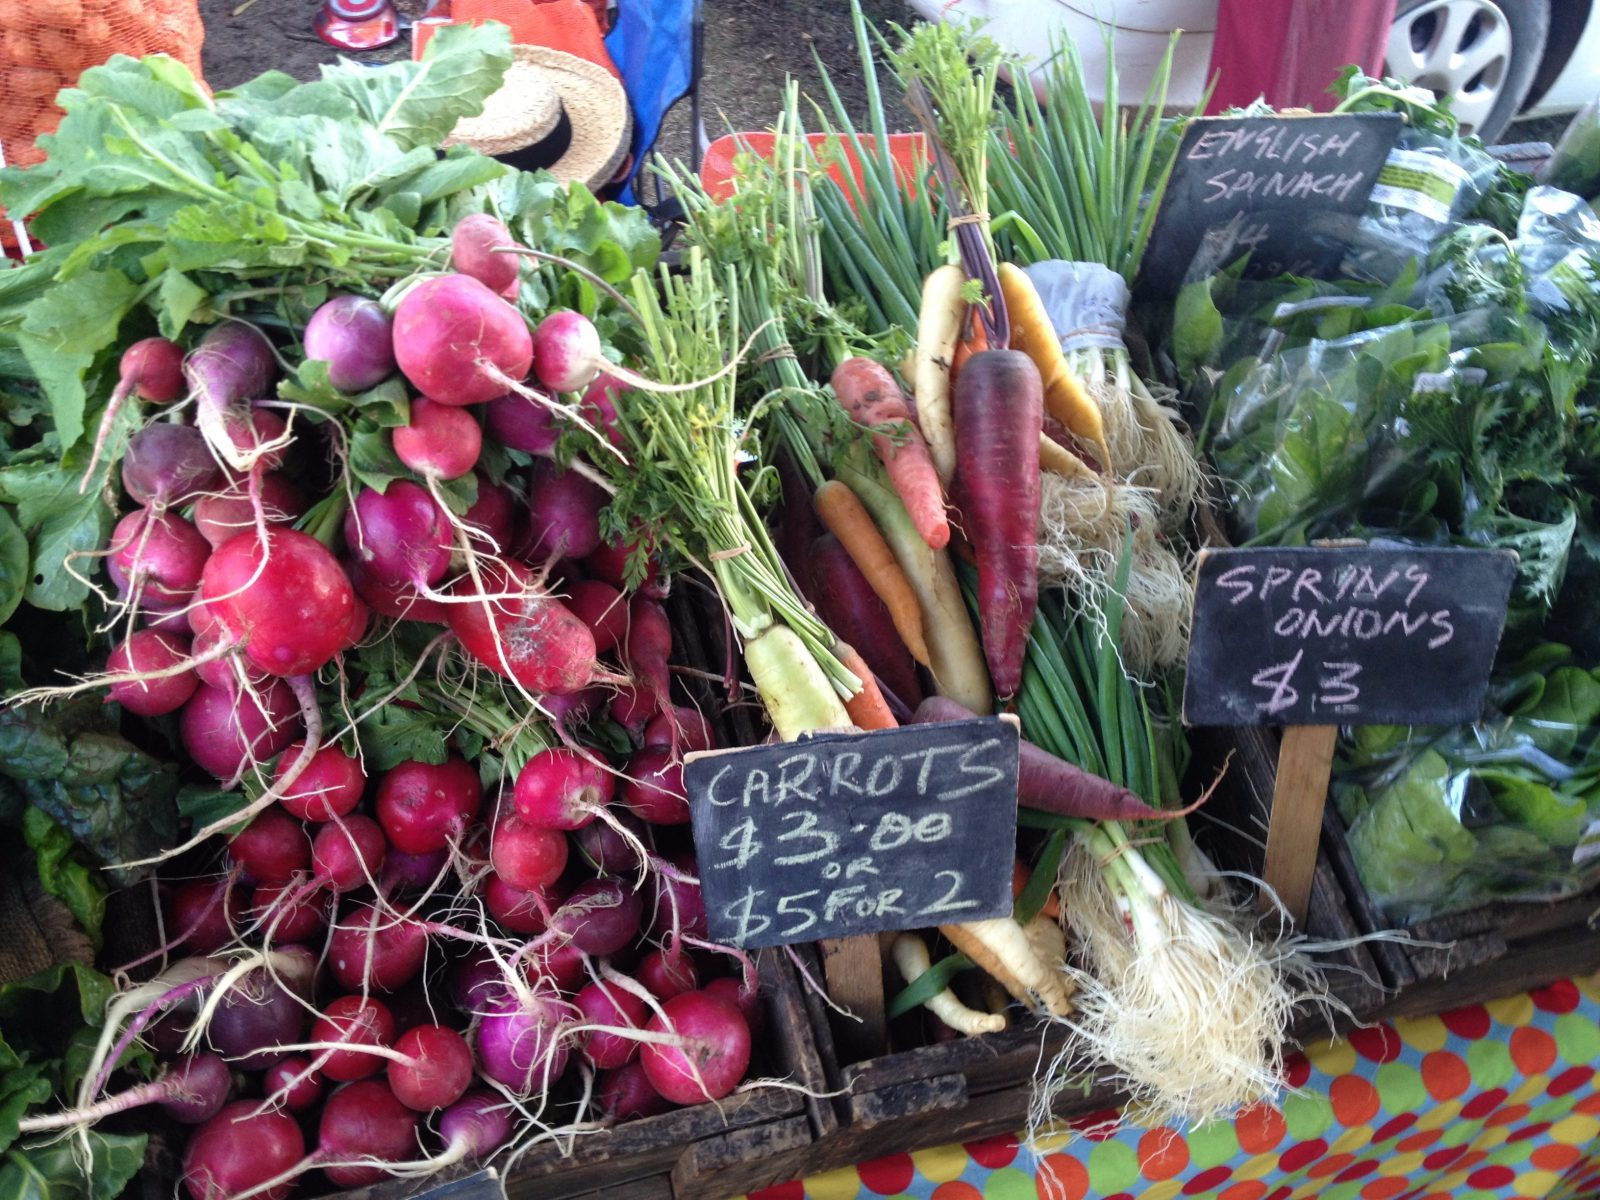 Fresh produce from South geelong farmers market